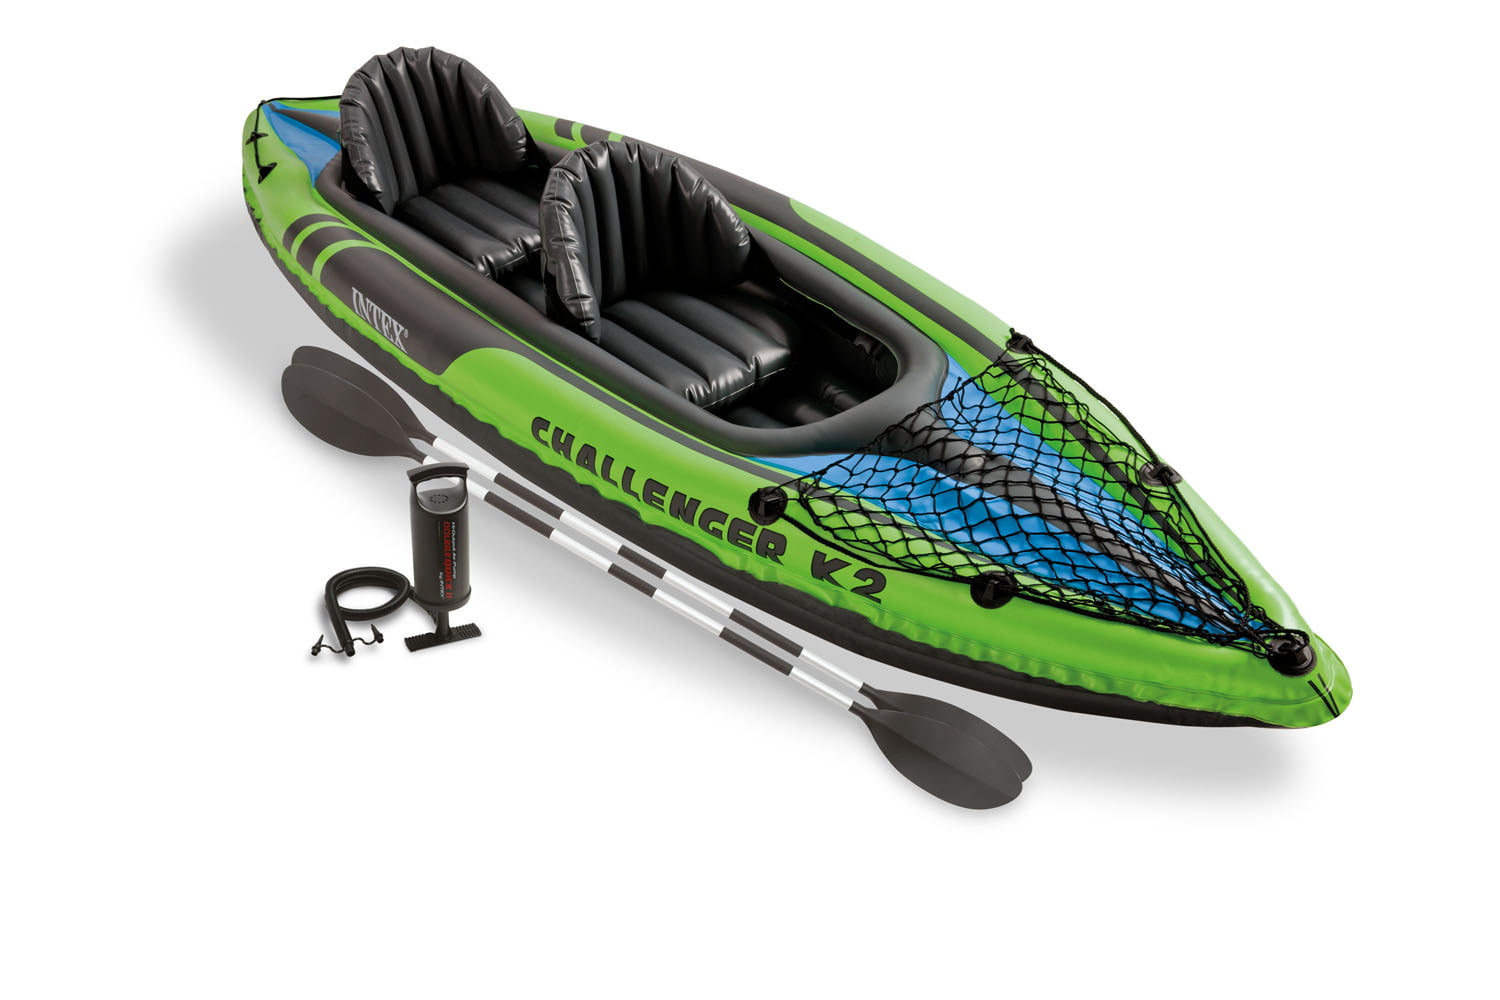 Intex Challenger K2 2-Person Kayak by Intex Recreation Corp.